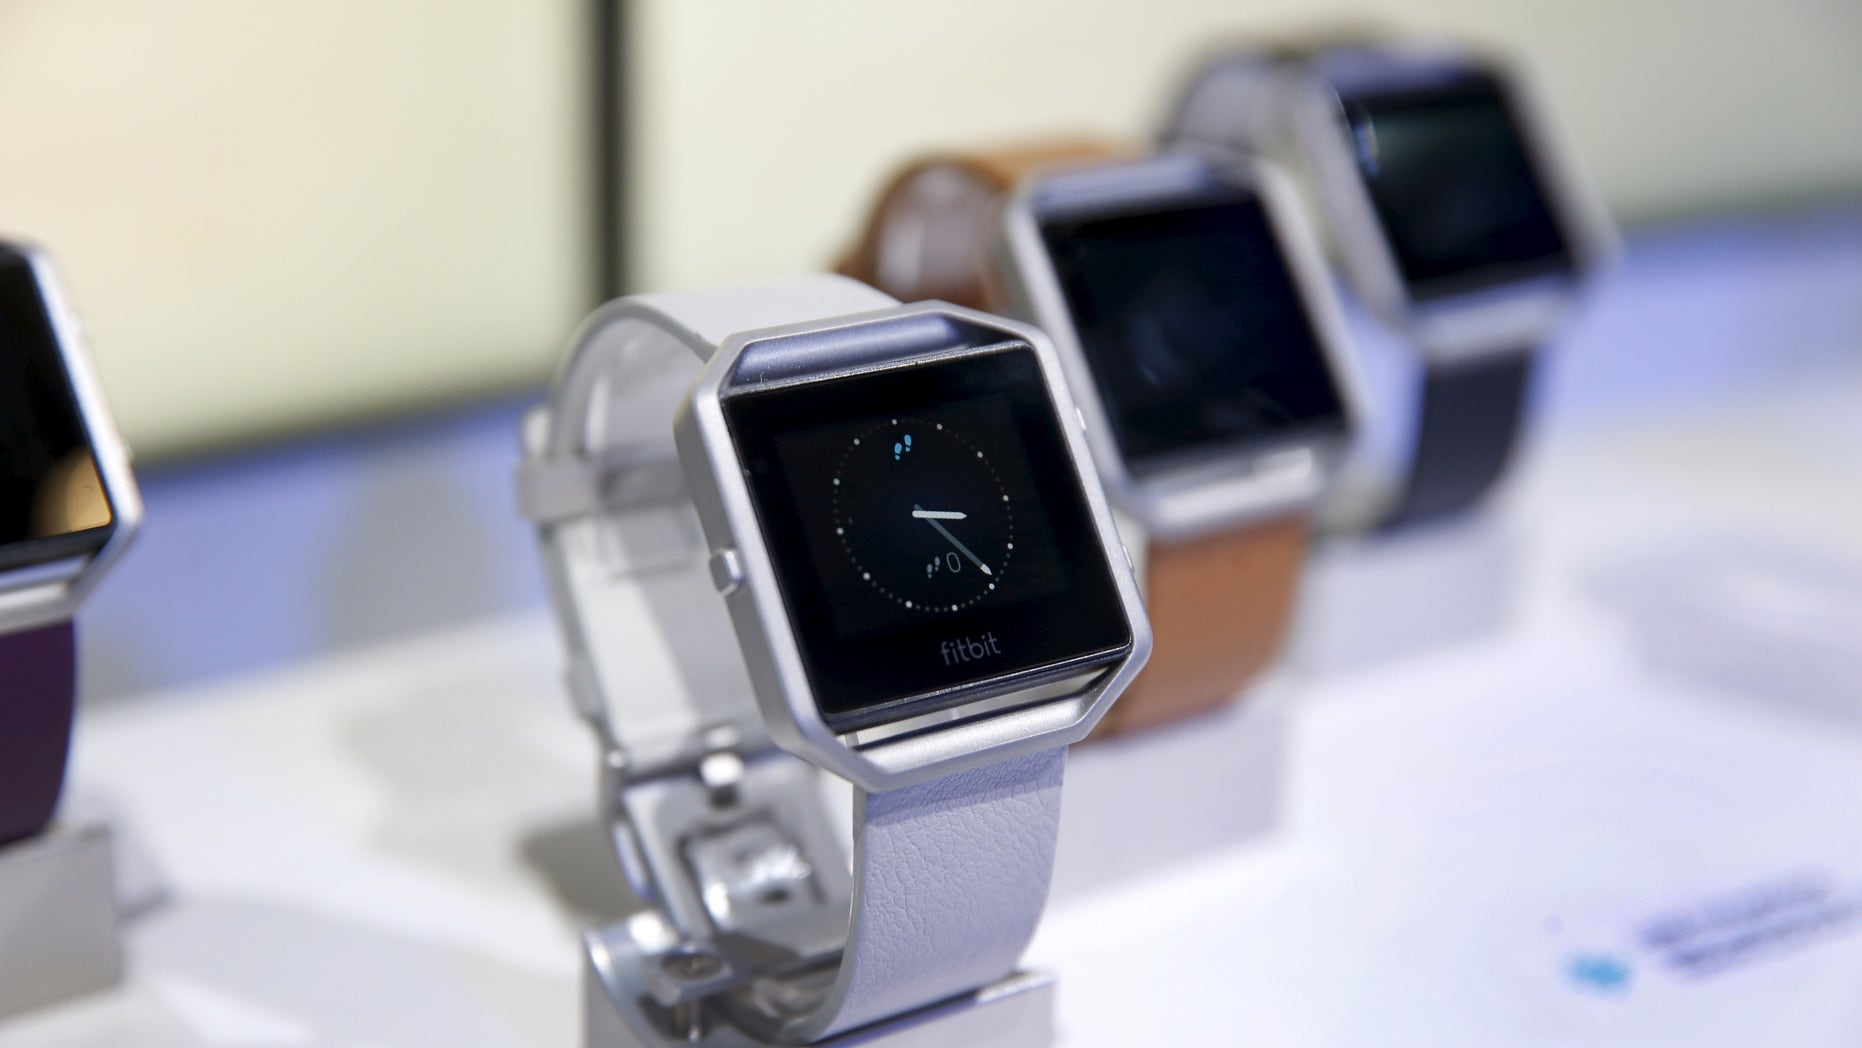 File photo: Fitbit Blaze watches are displayed during the 2016 CES trade show in Las Vegas, Nevada January 6, 2016. (REUTERS/Steve Marcus)